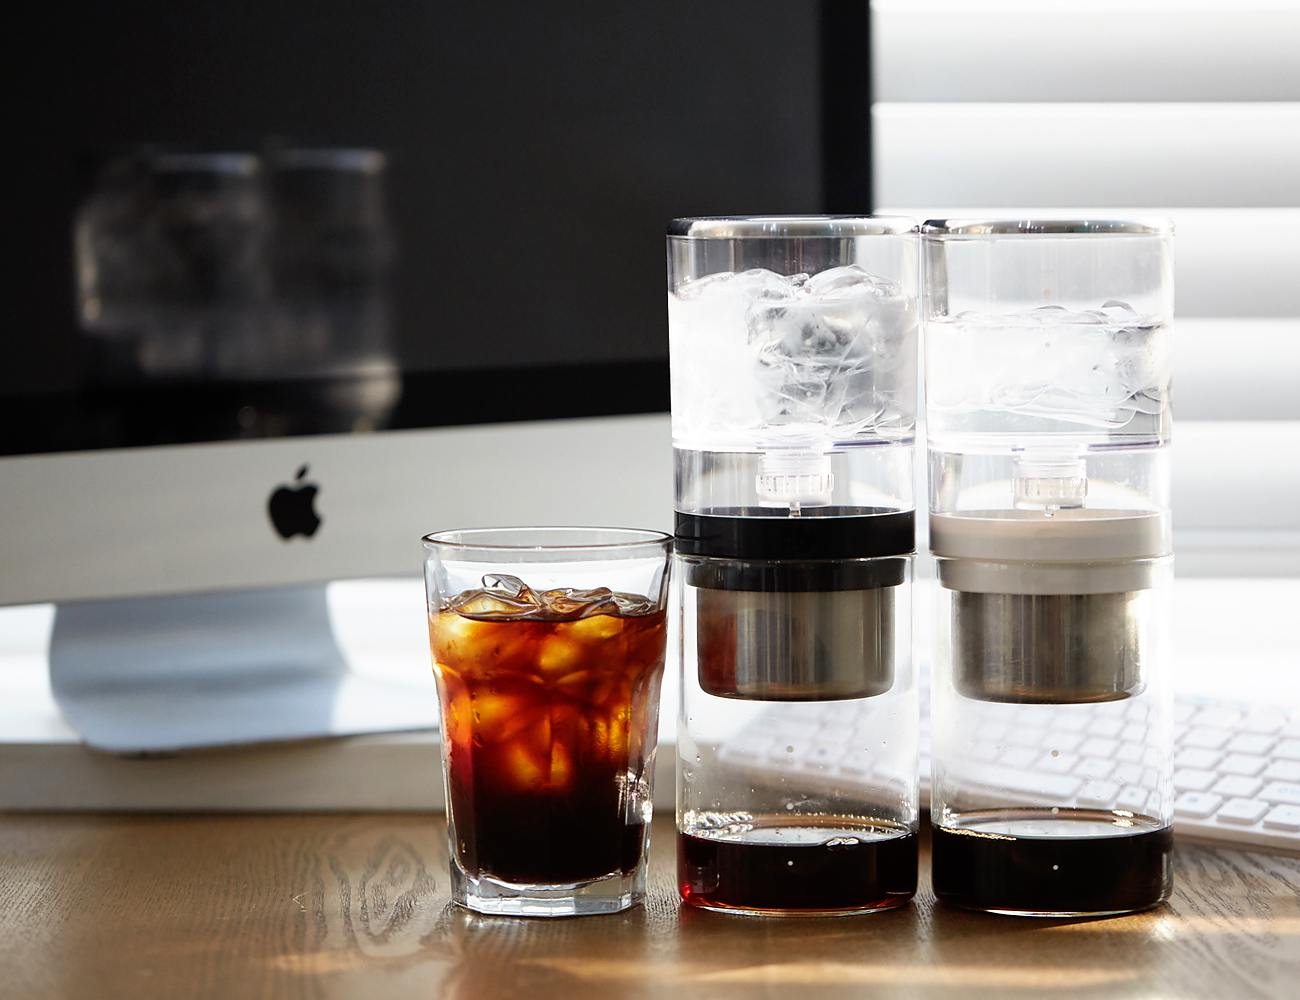 BeanPlus – Coffee Brewed Right, One Drip At A Time